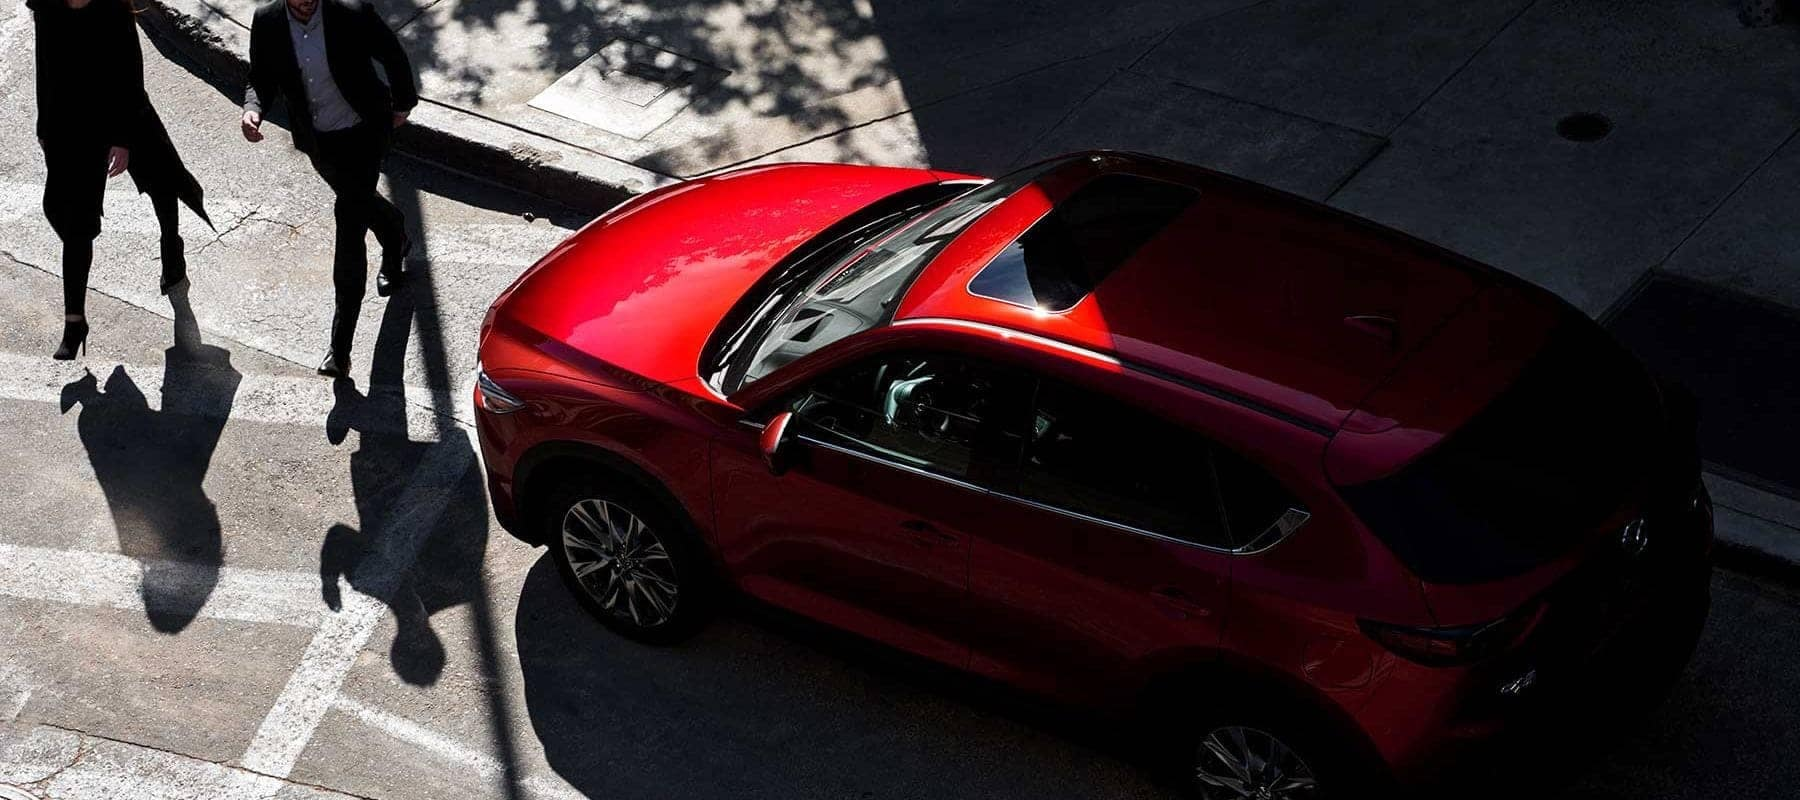 2019-mazda-cx-5-grand-touring-reserve-fuel-efficient-suv-side-profile